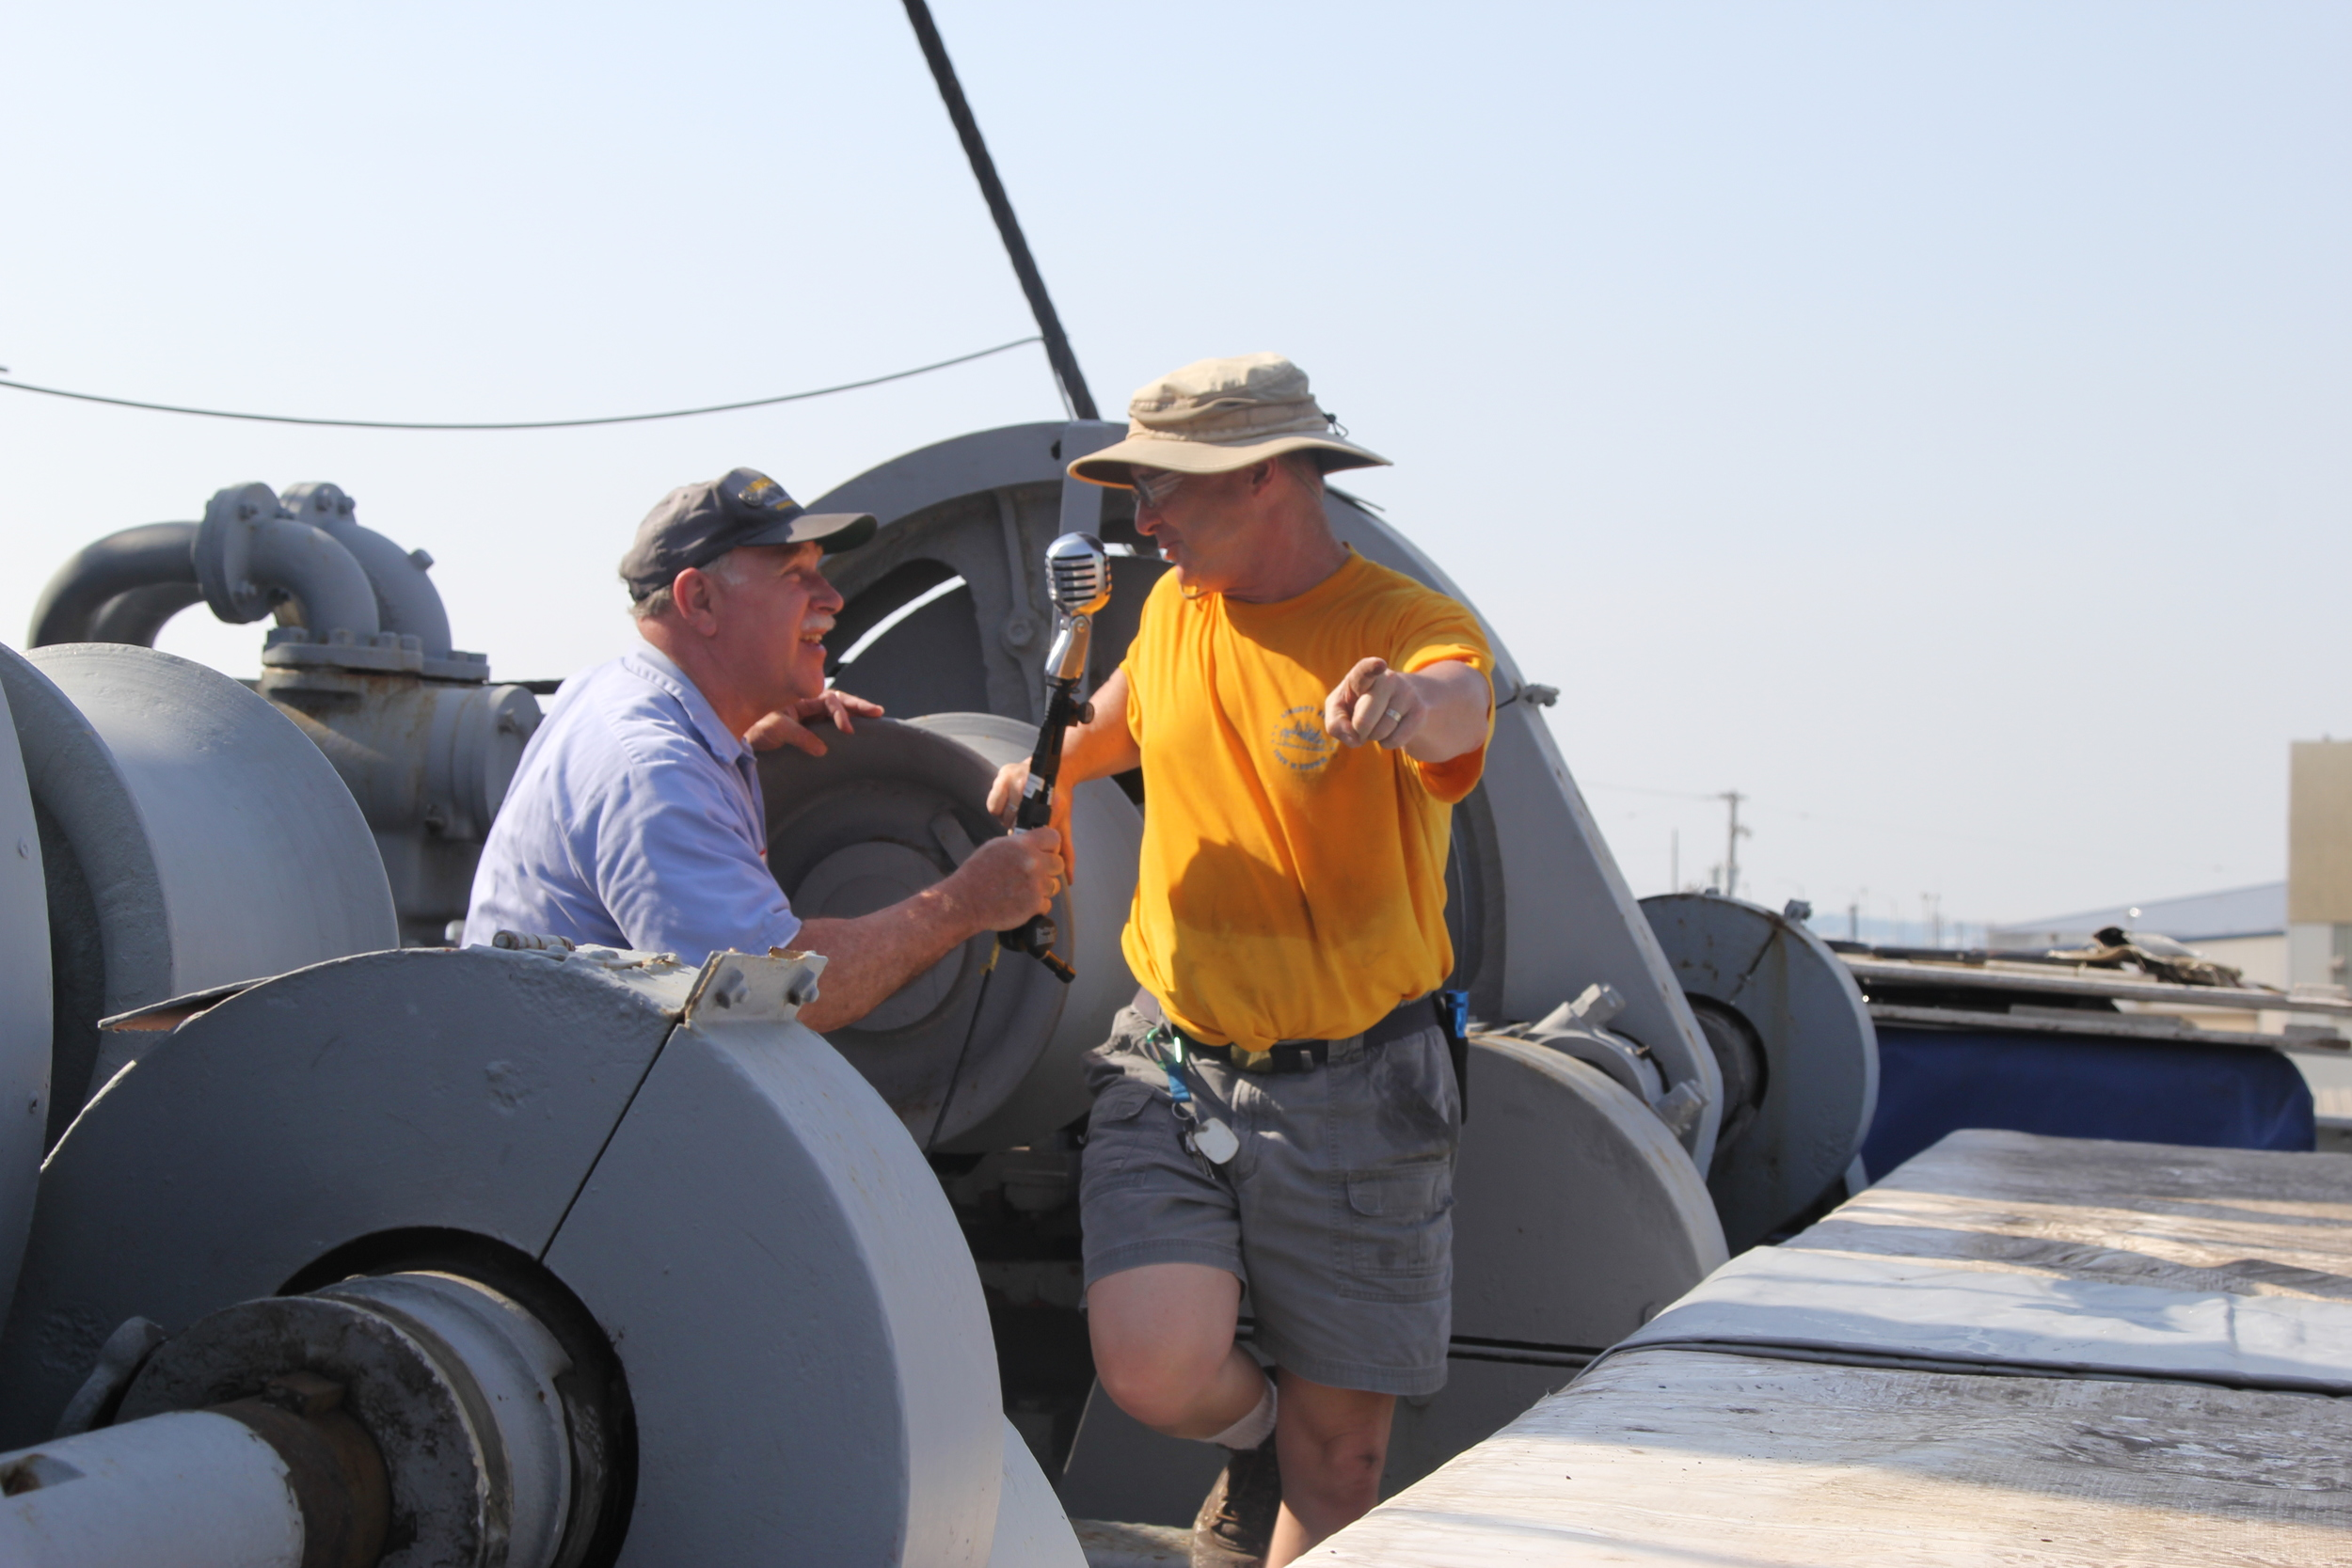 Howard directs Ray in microphone placementfor the guest speakers before a cruise.